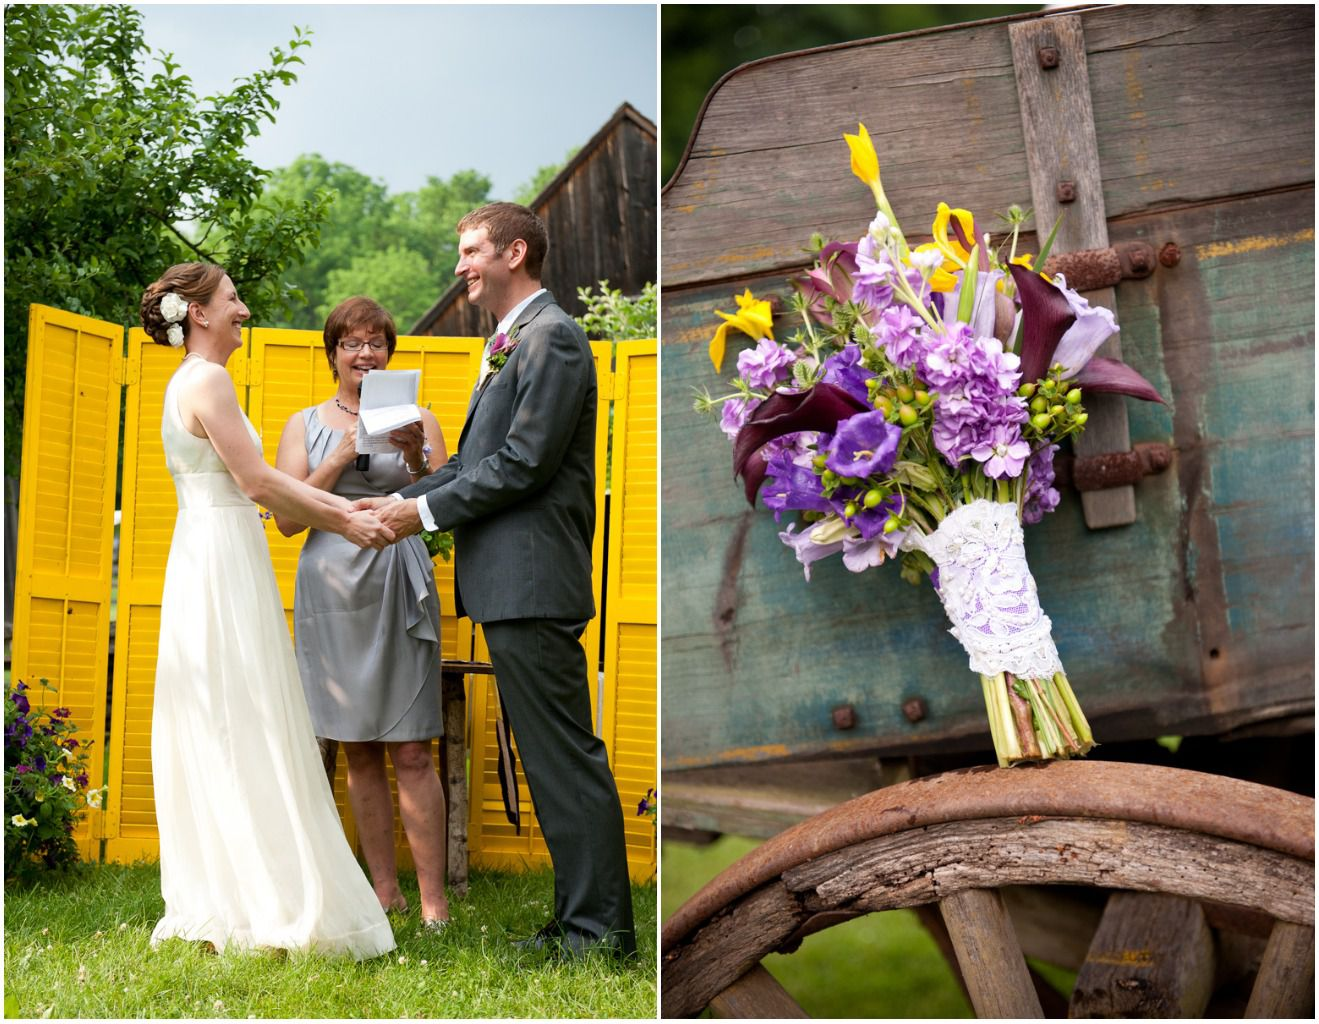 diy rustic wedding decorations do it yourself style backyard wedding rustic wedding chic 27740